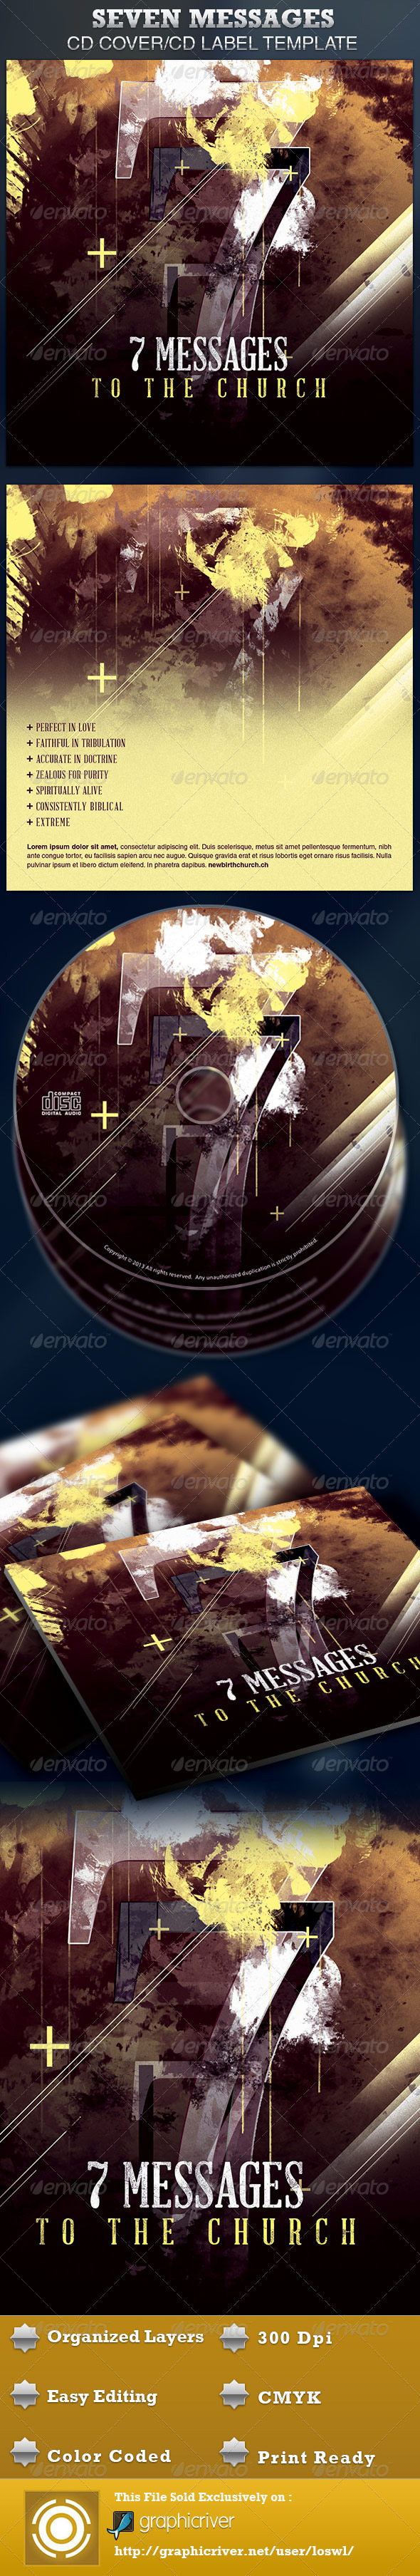 Seven Messages  CD Artwork Template - CD & DVD Artwork Print Templates